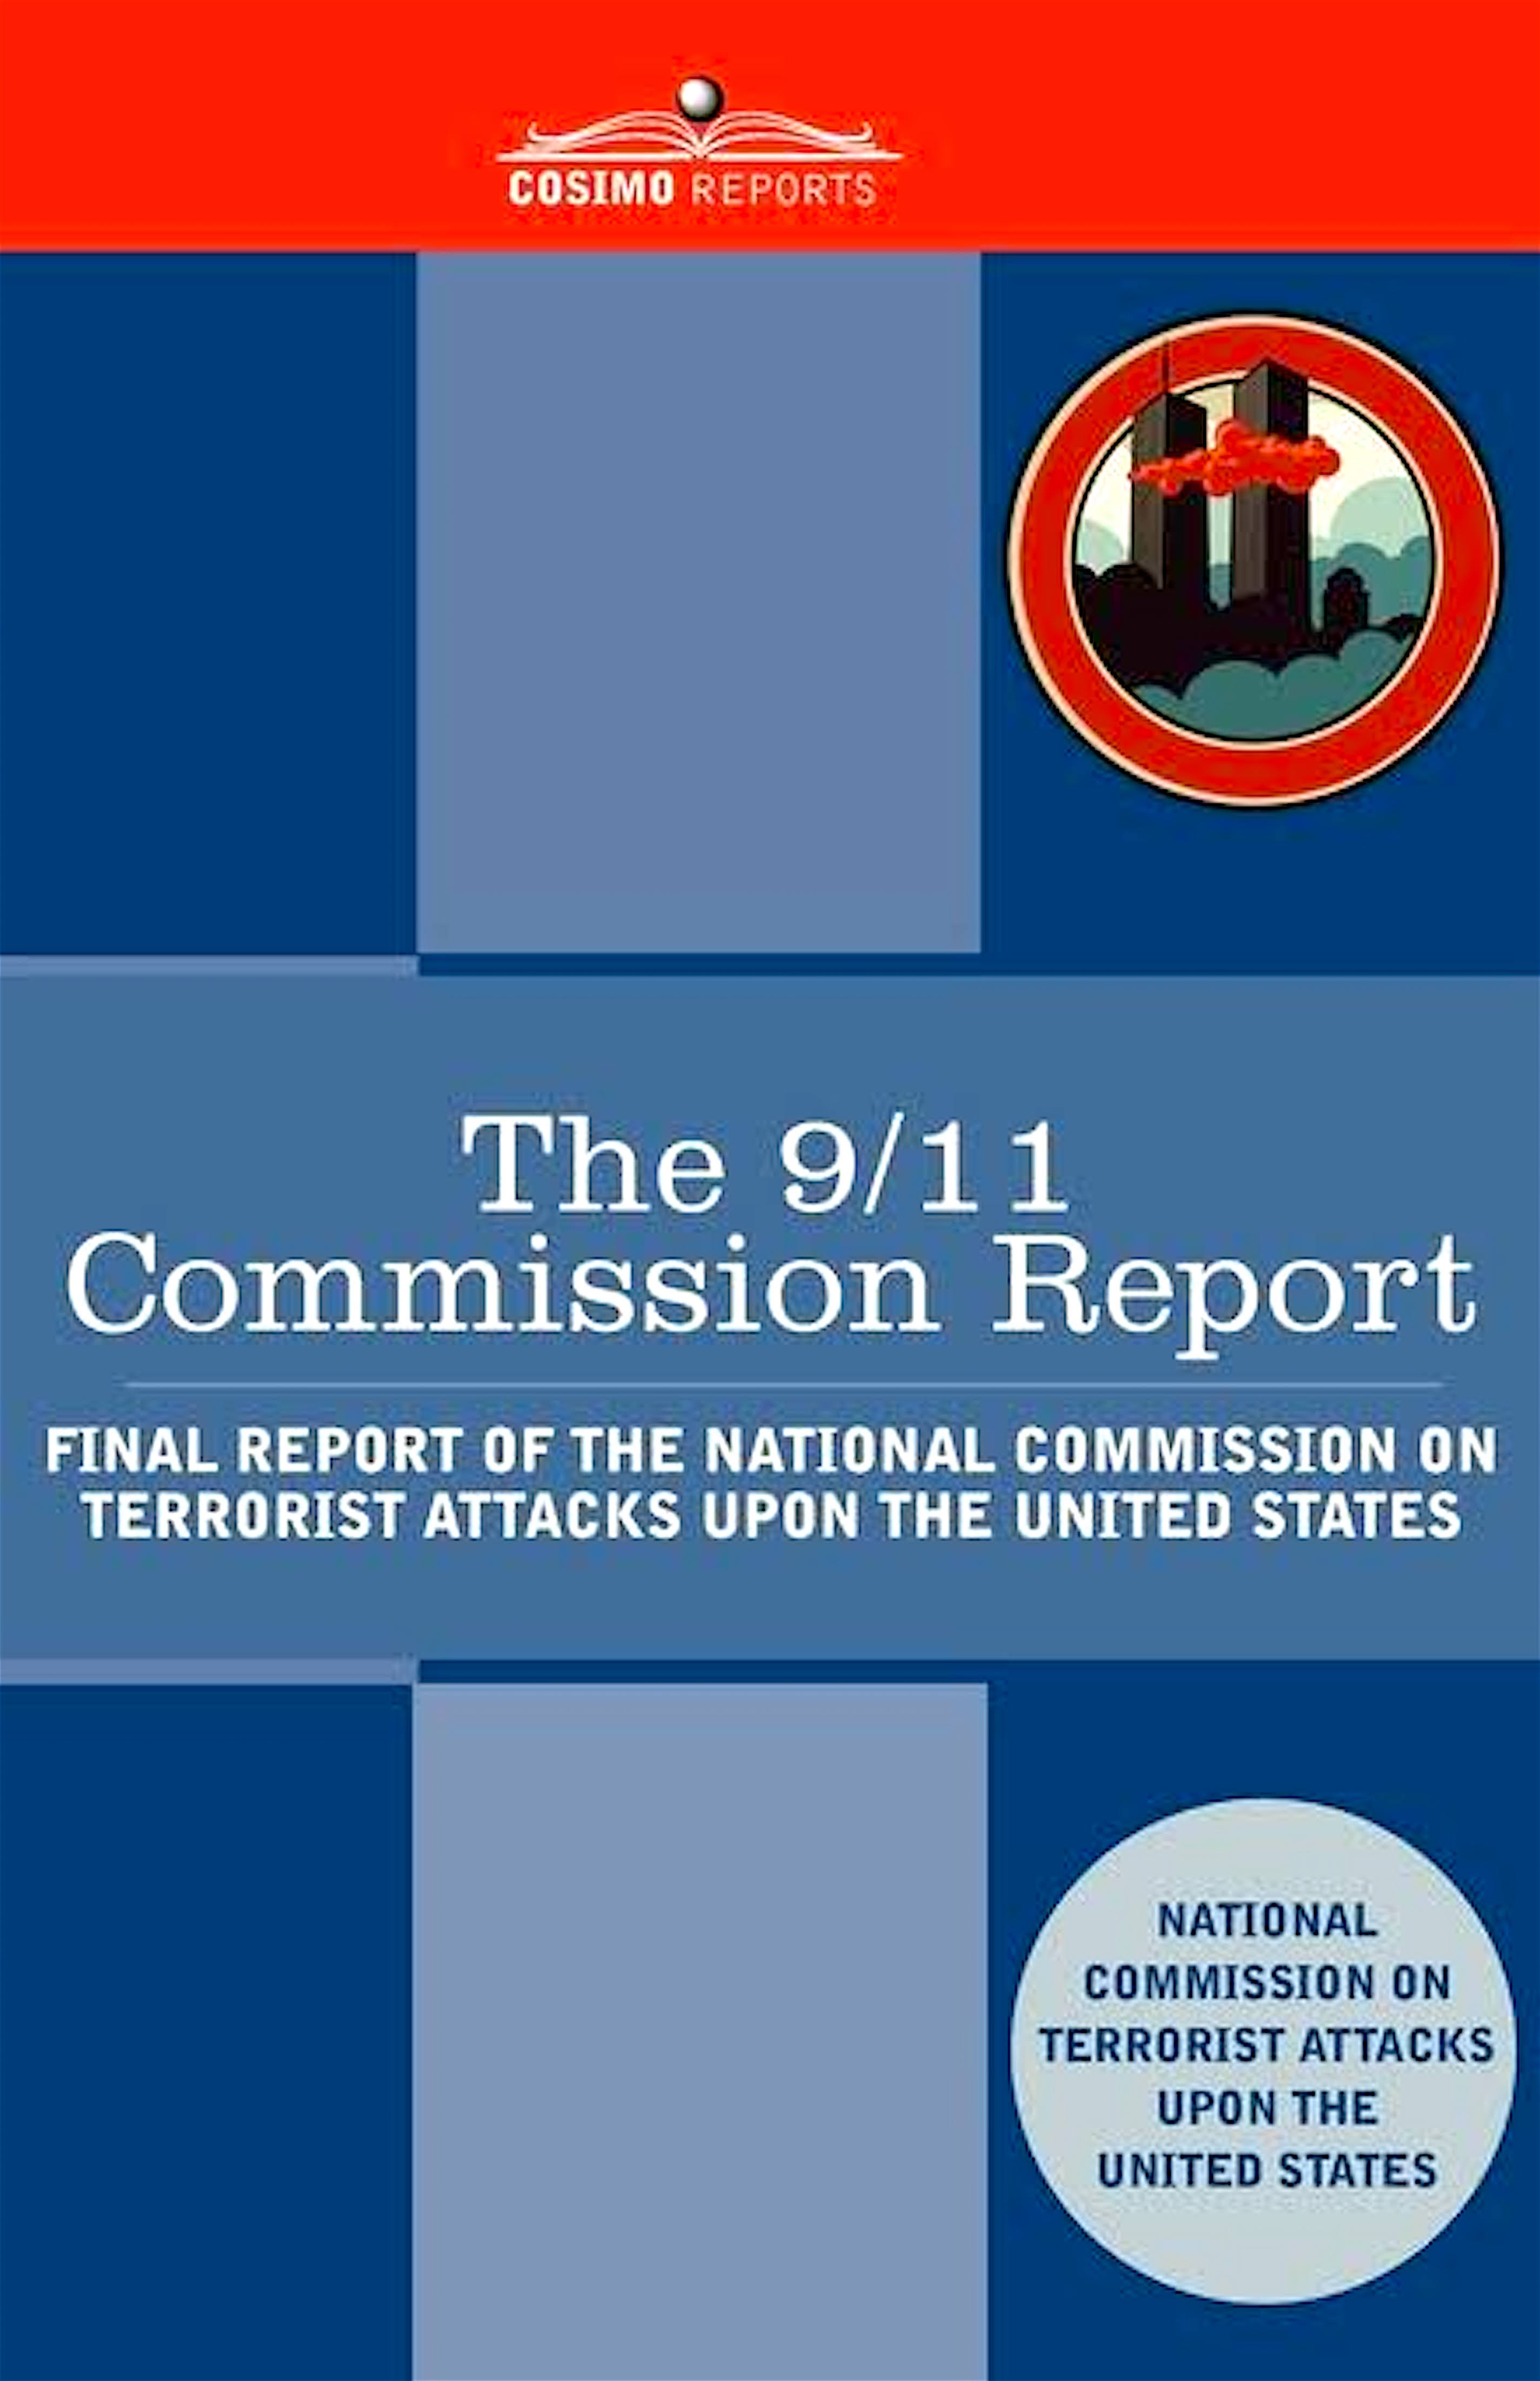 Lees mee met Micha Kat: The 911 Commission Report – Final Report of the National Commission on Terrorist Attacks upon the United States